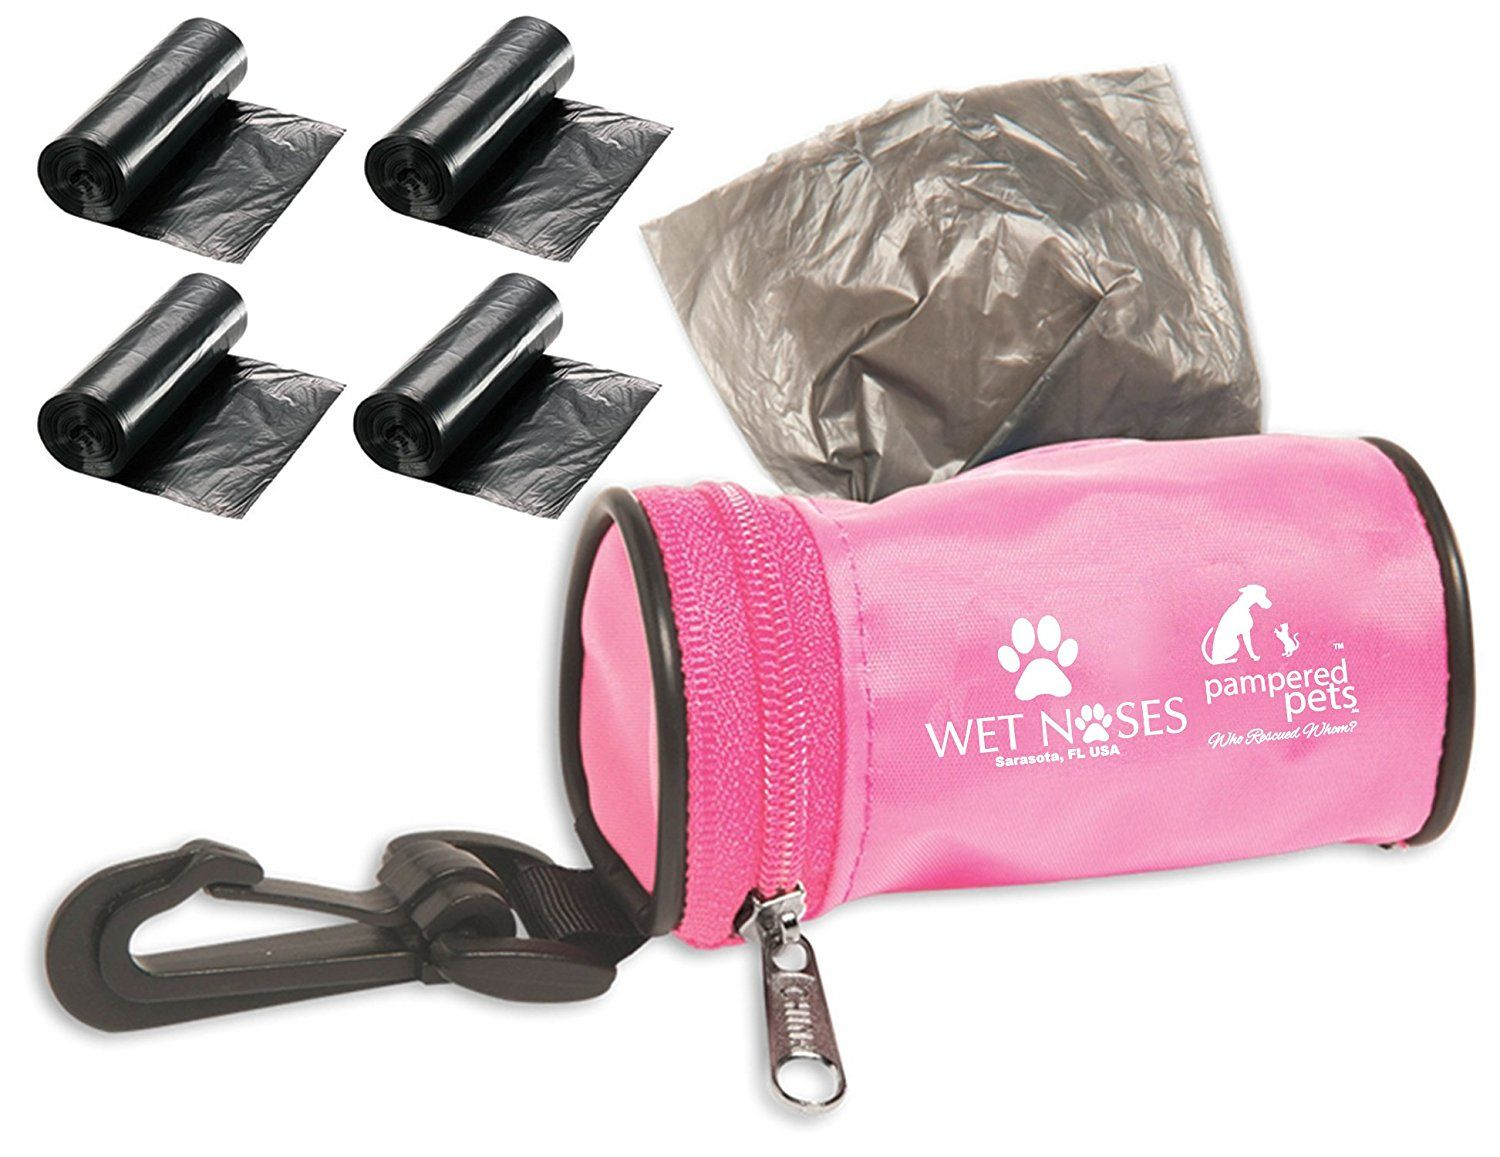 Pampered Pets Wet Noses Bag Dispenser with 4 Extra Rolls